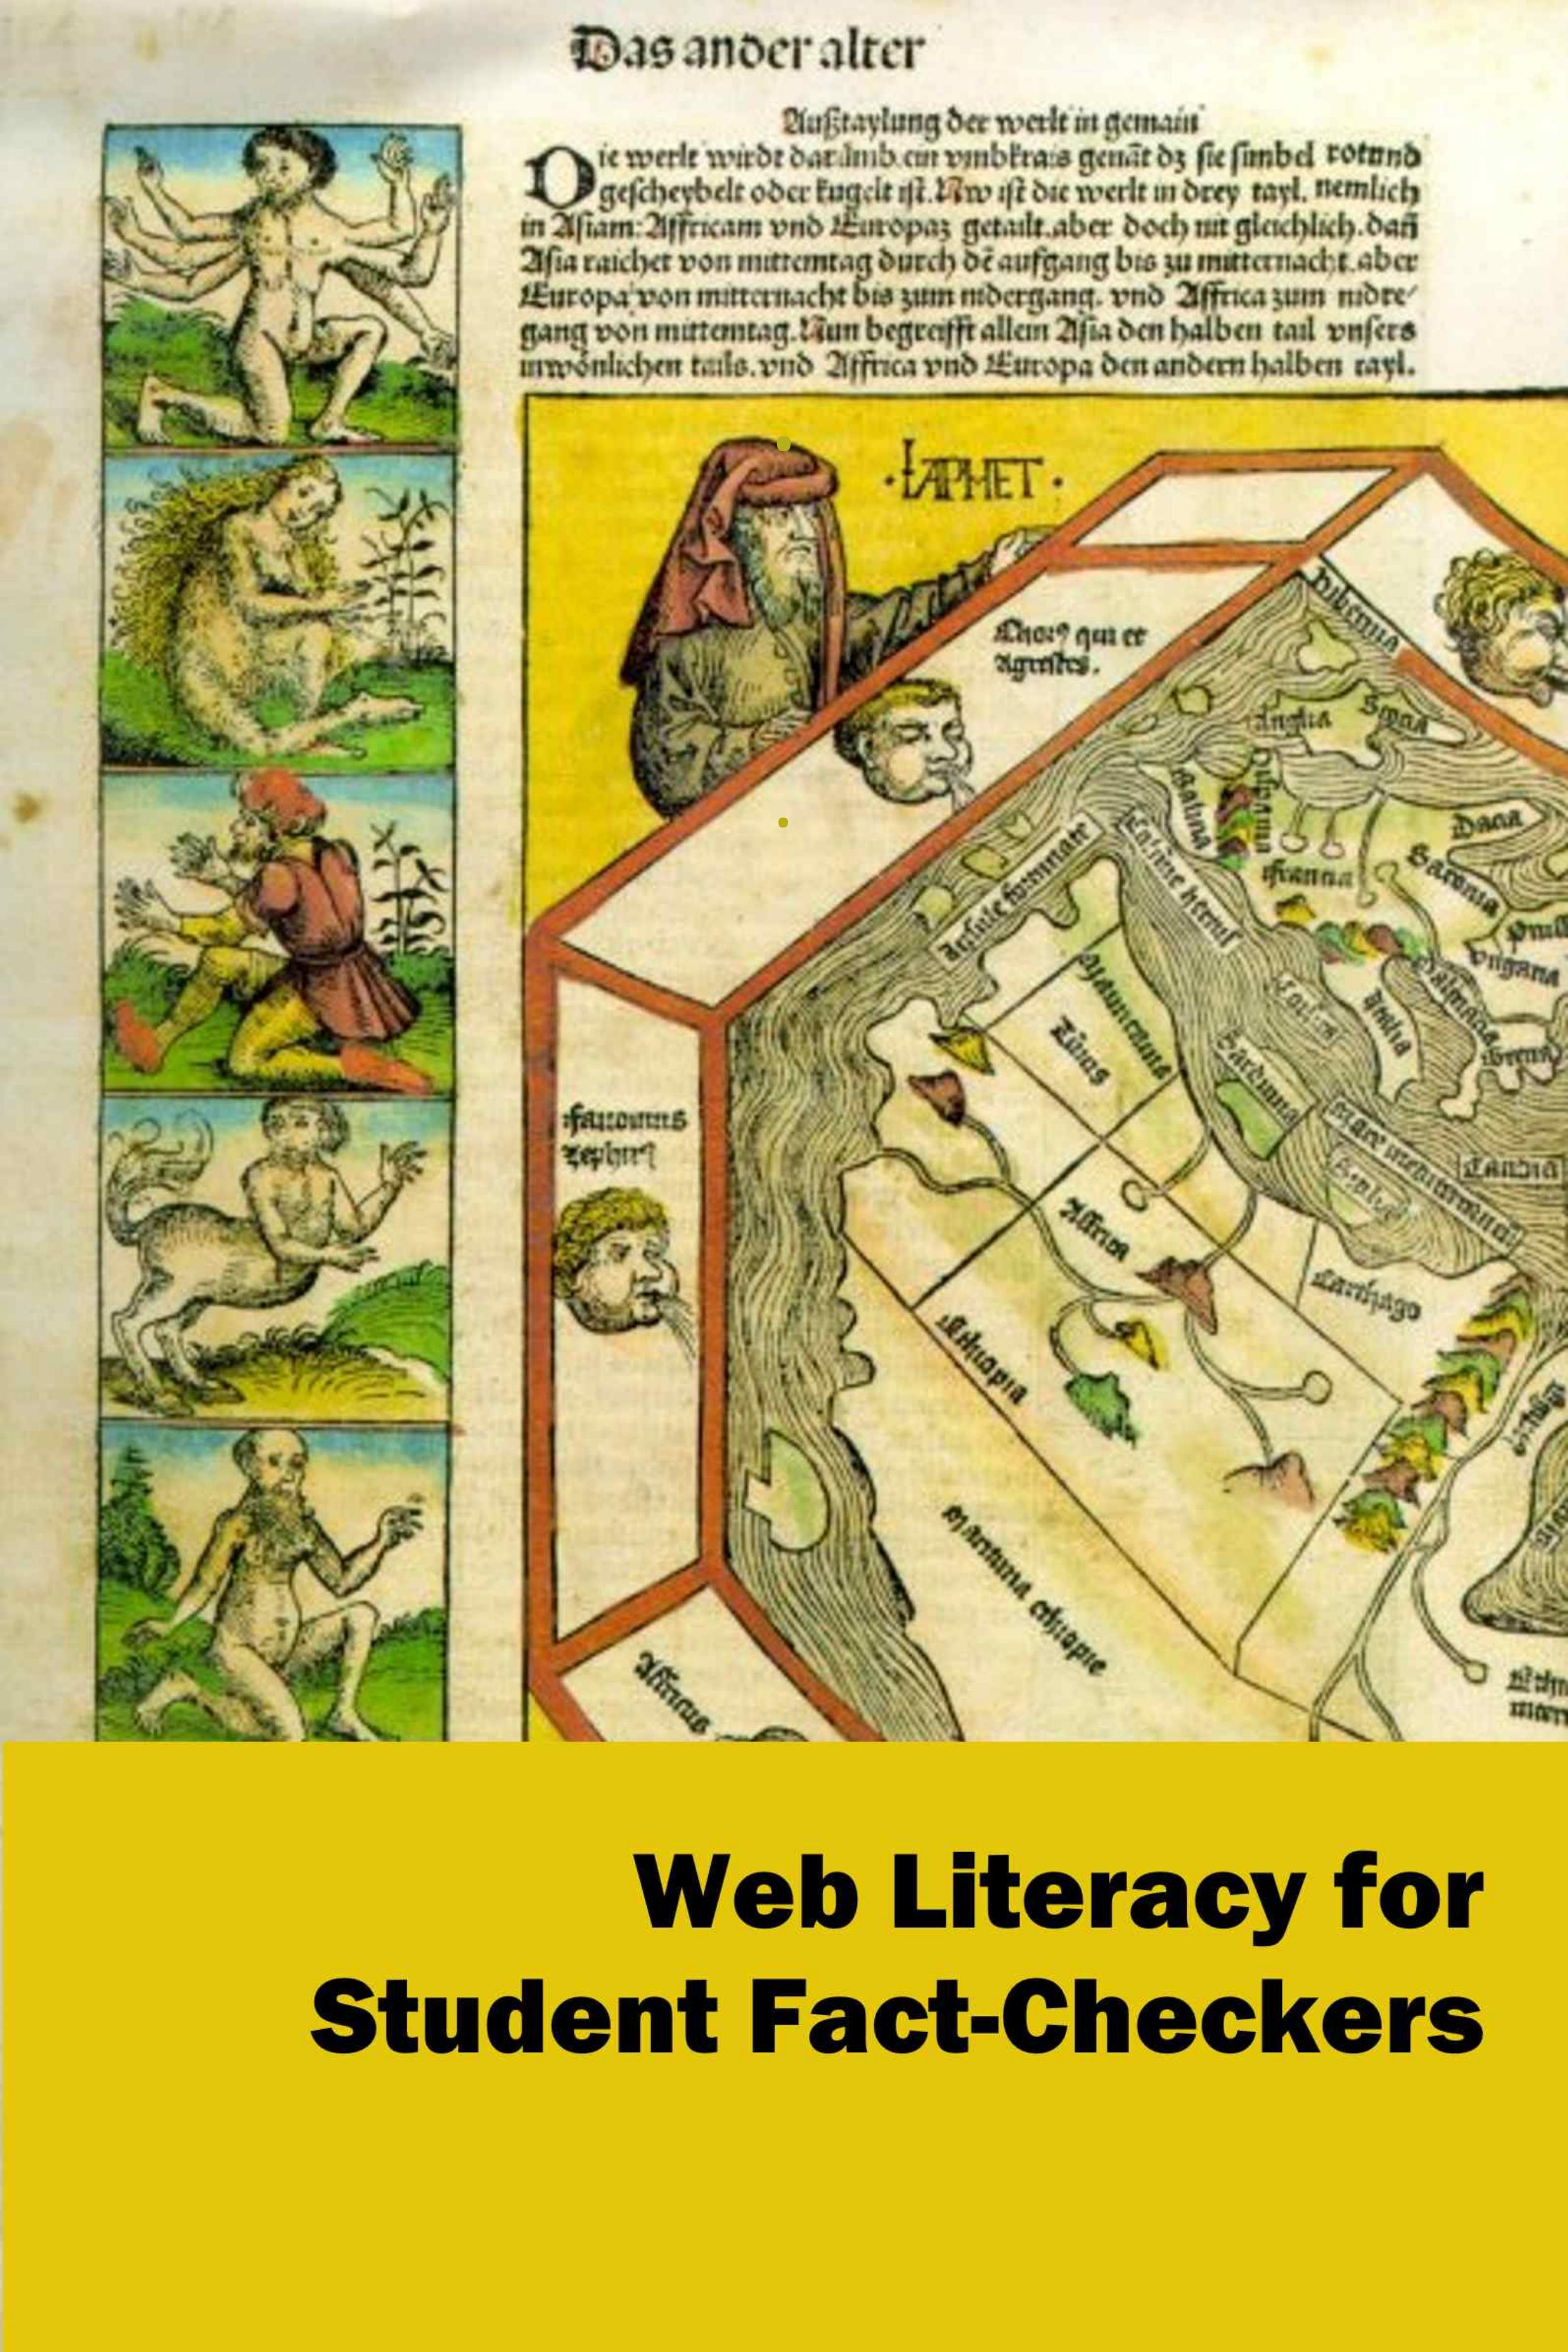 web literacy for student fact-checkers cover